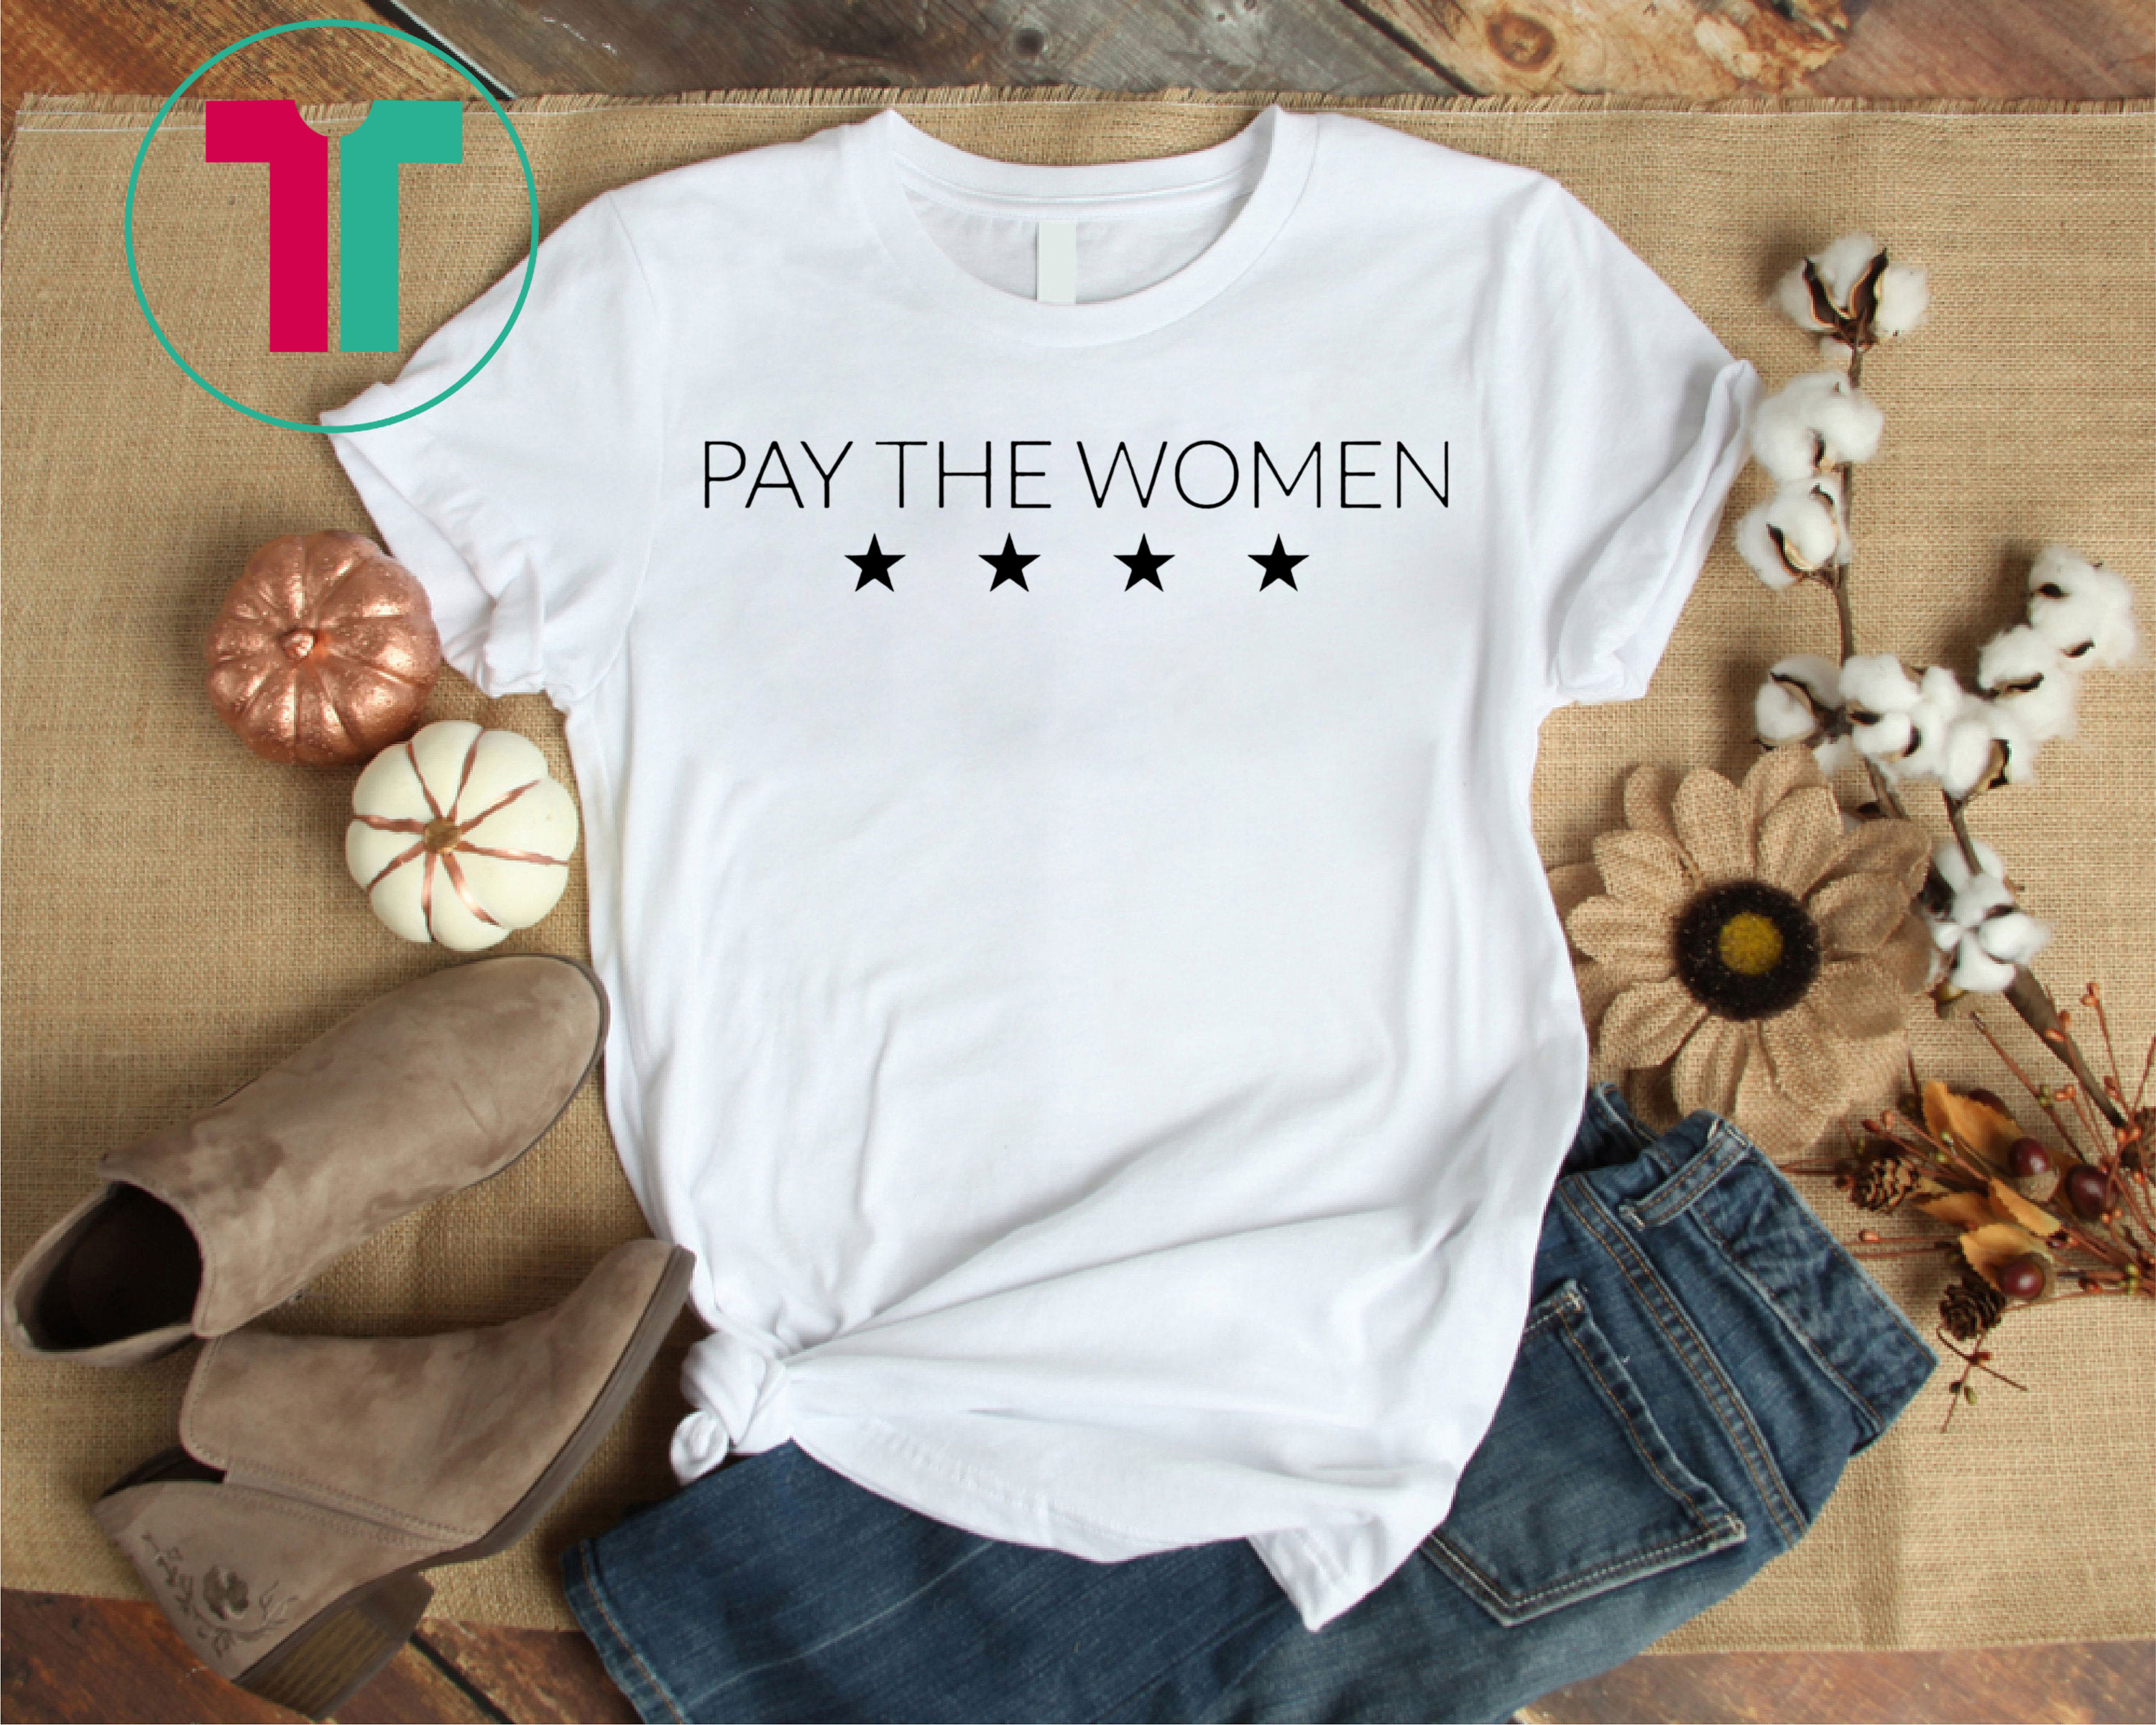 finest selection 7ab95 e5f20 Pay The Women 4 Stars Shirt USWNT Shirt 4th Time World Cup Shirt